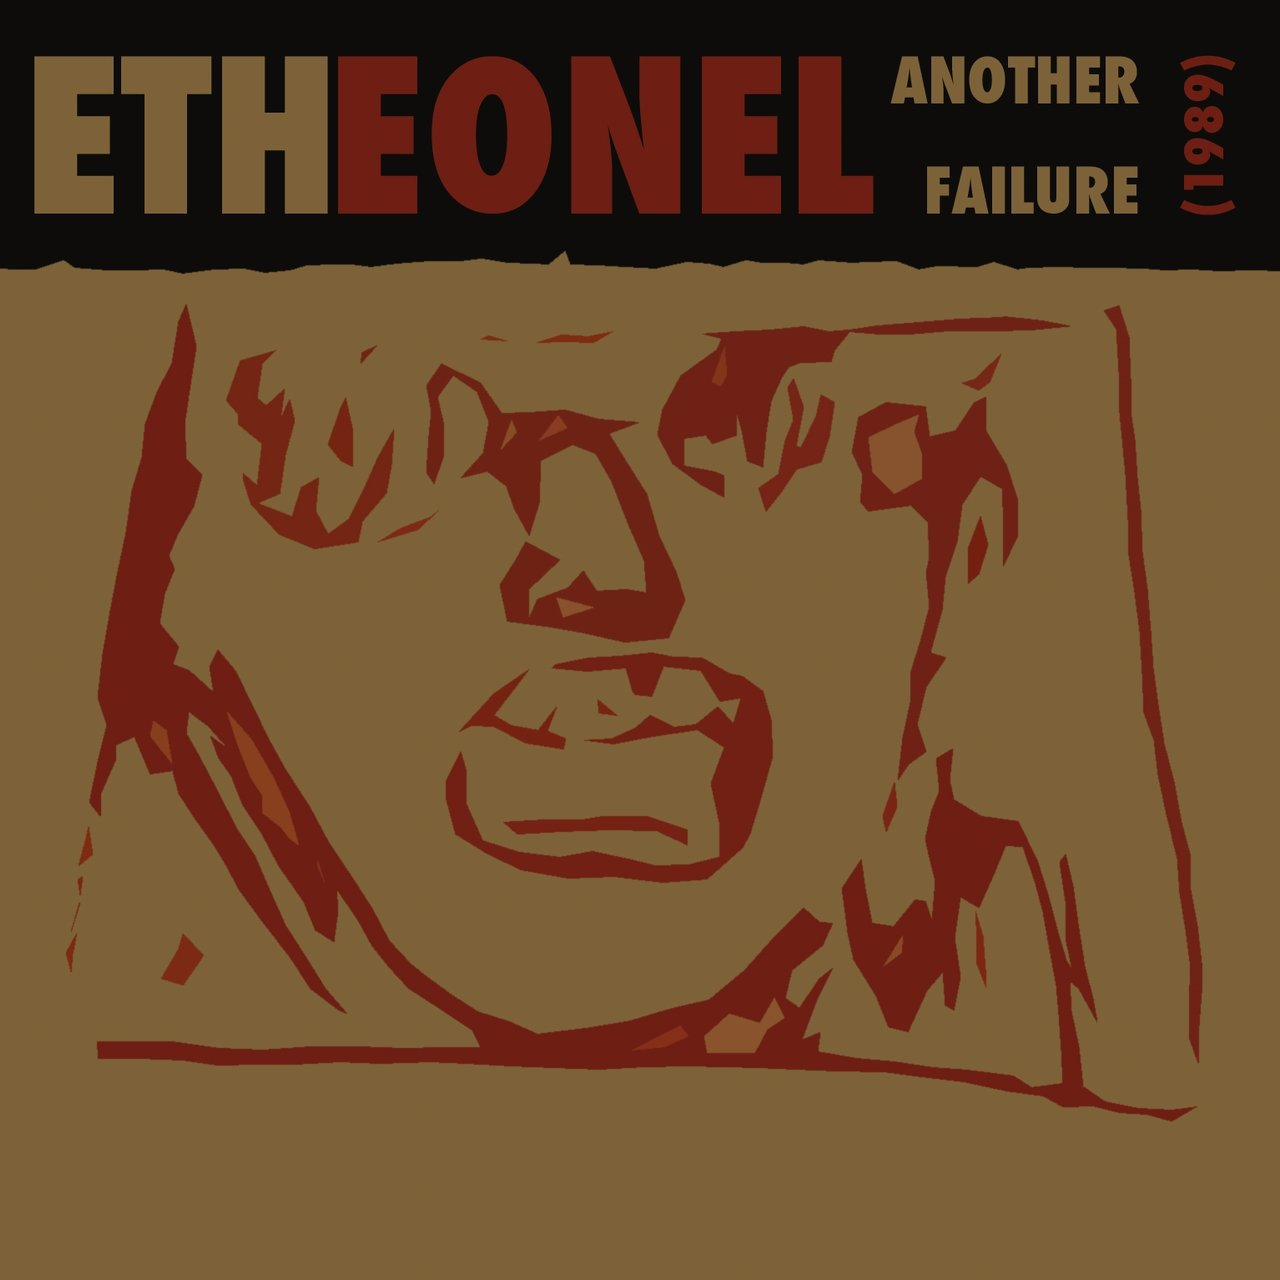 Another Failure (1989)